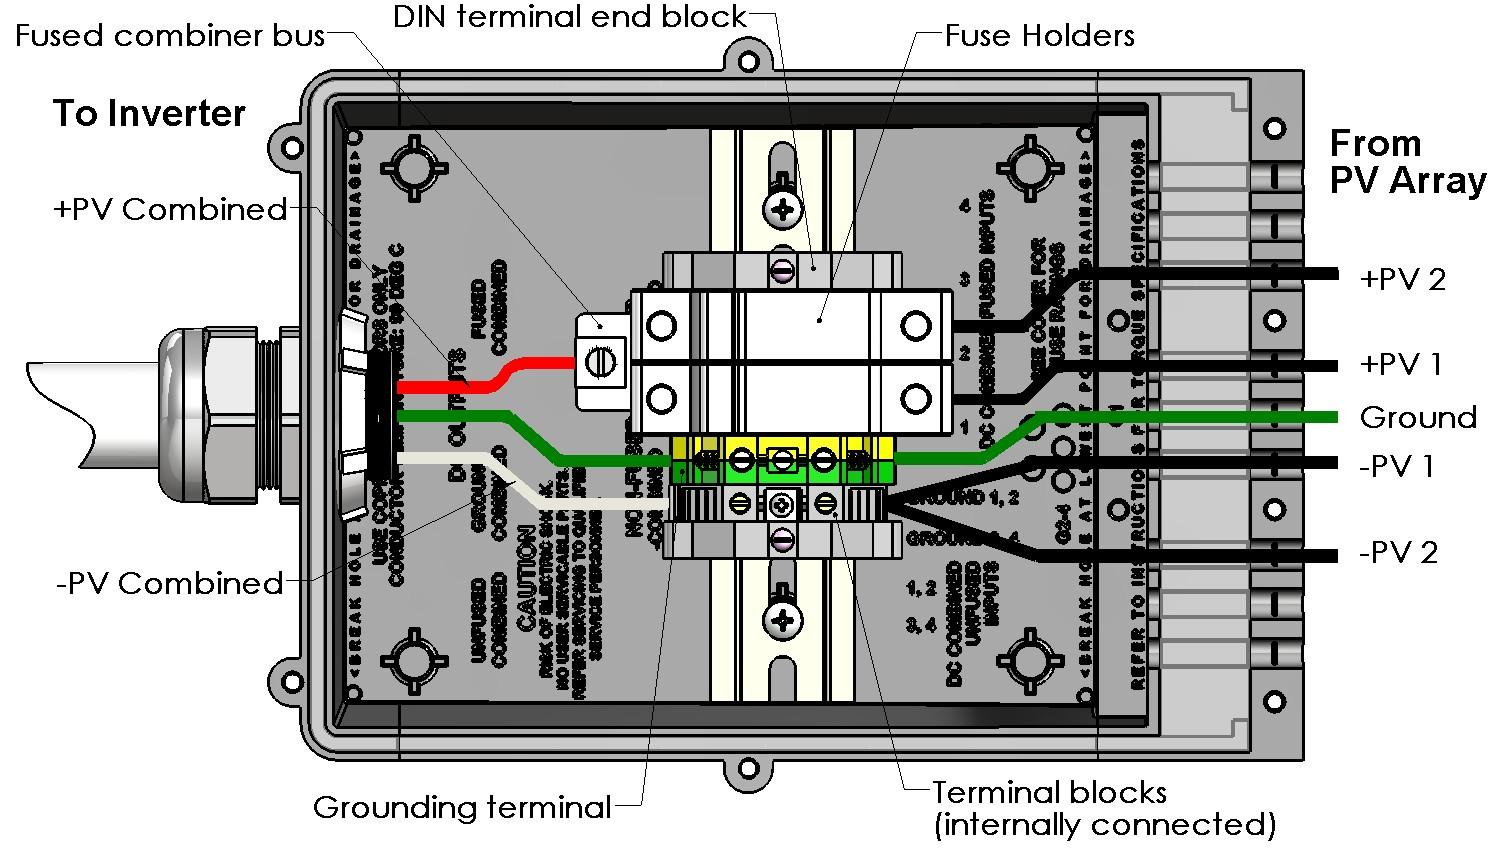 - Two-string fused combiner with DIN rail-mount components, negative ground Figure 18: Wiring Diagram Two-String Fused Combiner